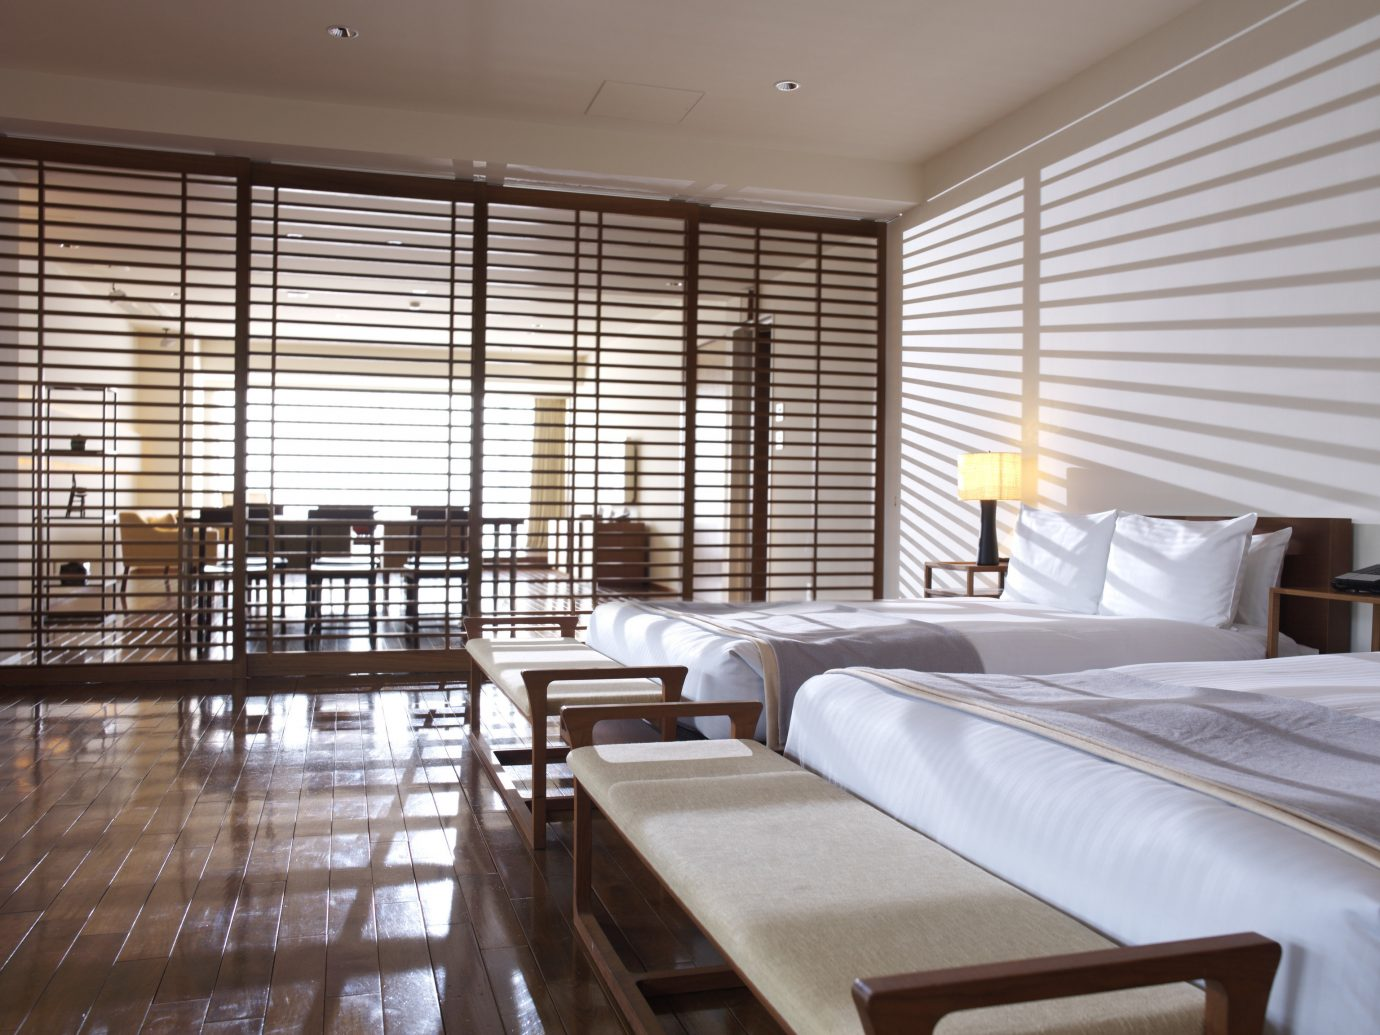 Hotels Japan Tokyo window indoor floor ceiling room bed property interior design hotel condominium window covering real estate Suite estate Bedroom furniture several